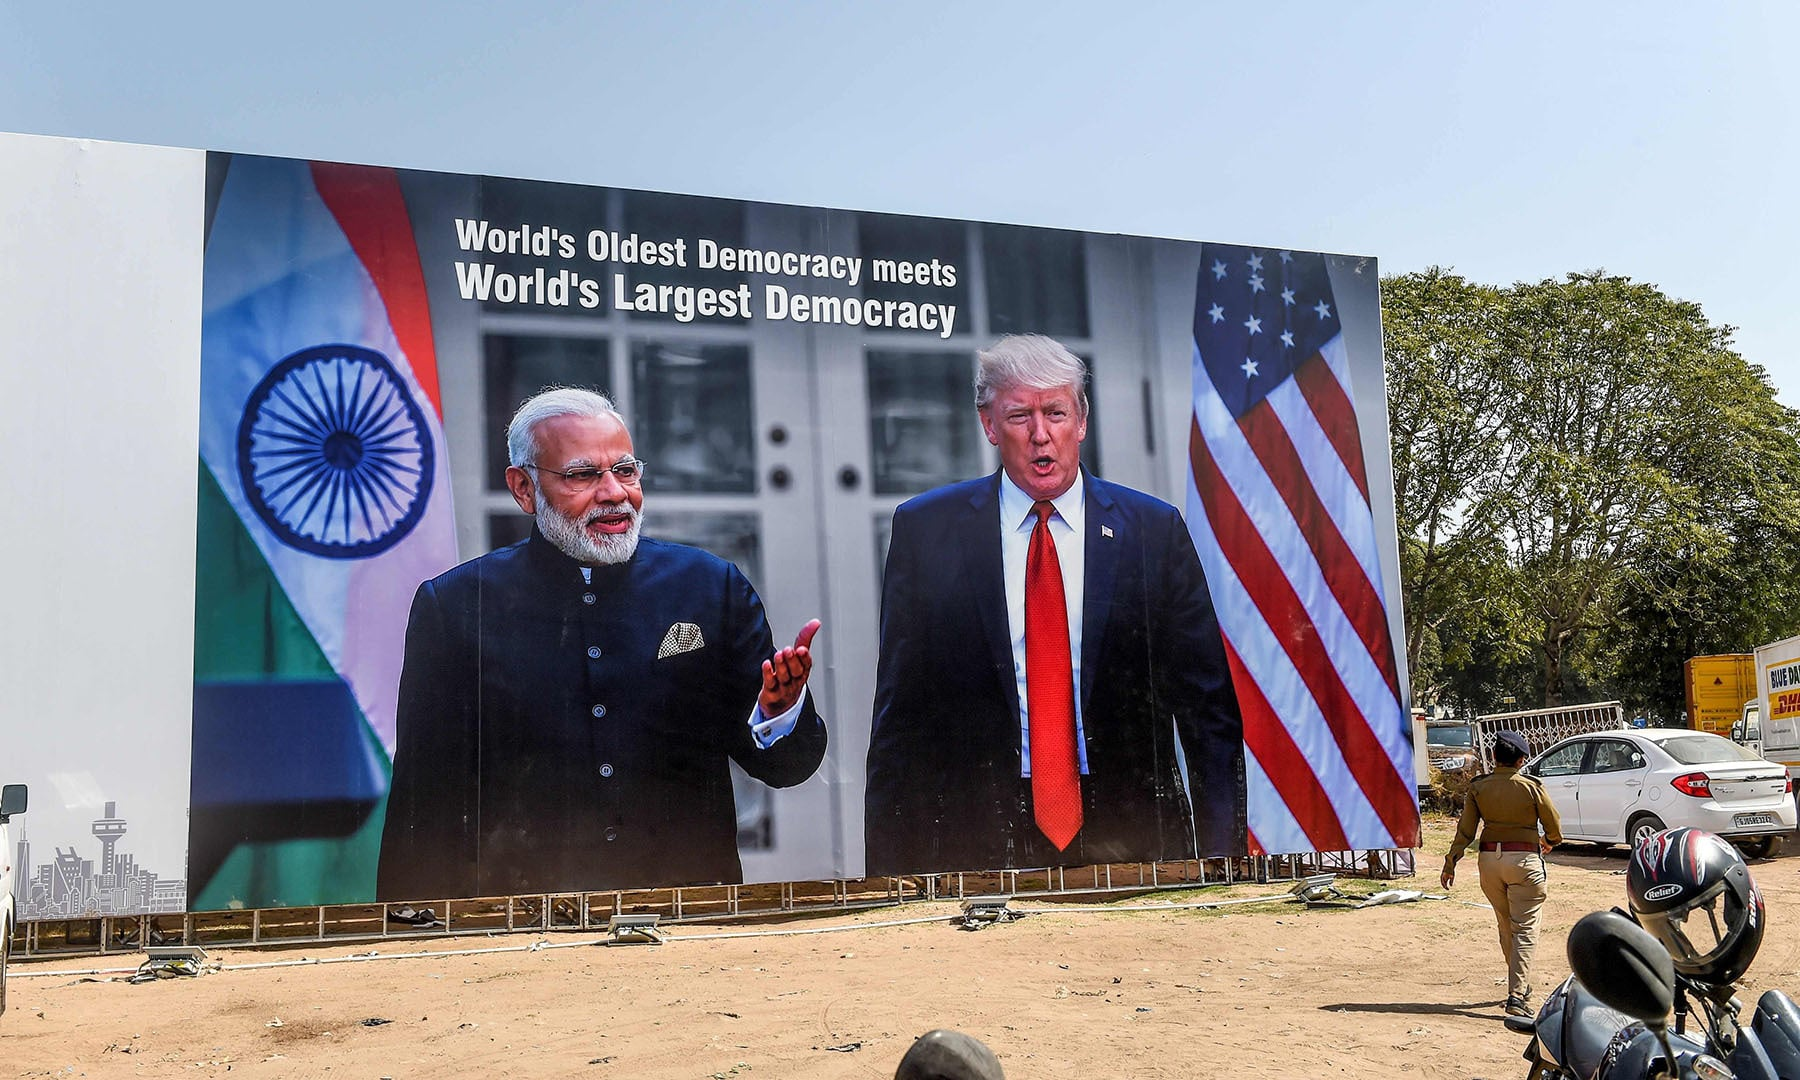 In this photo taken on February 22, a police personnel (R) walks past a billboard displaying pictures of India's Prime Minister Narendra Modi (L) and US President Donald Trump (R) near the Sardar Vallabhbhai Patel International Airport in Ahmedabad, ahead of US President Donald Trump's visit in India.  — AFP